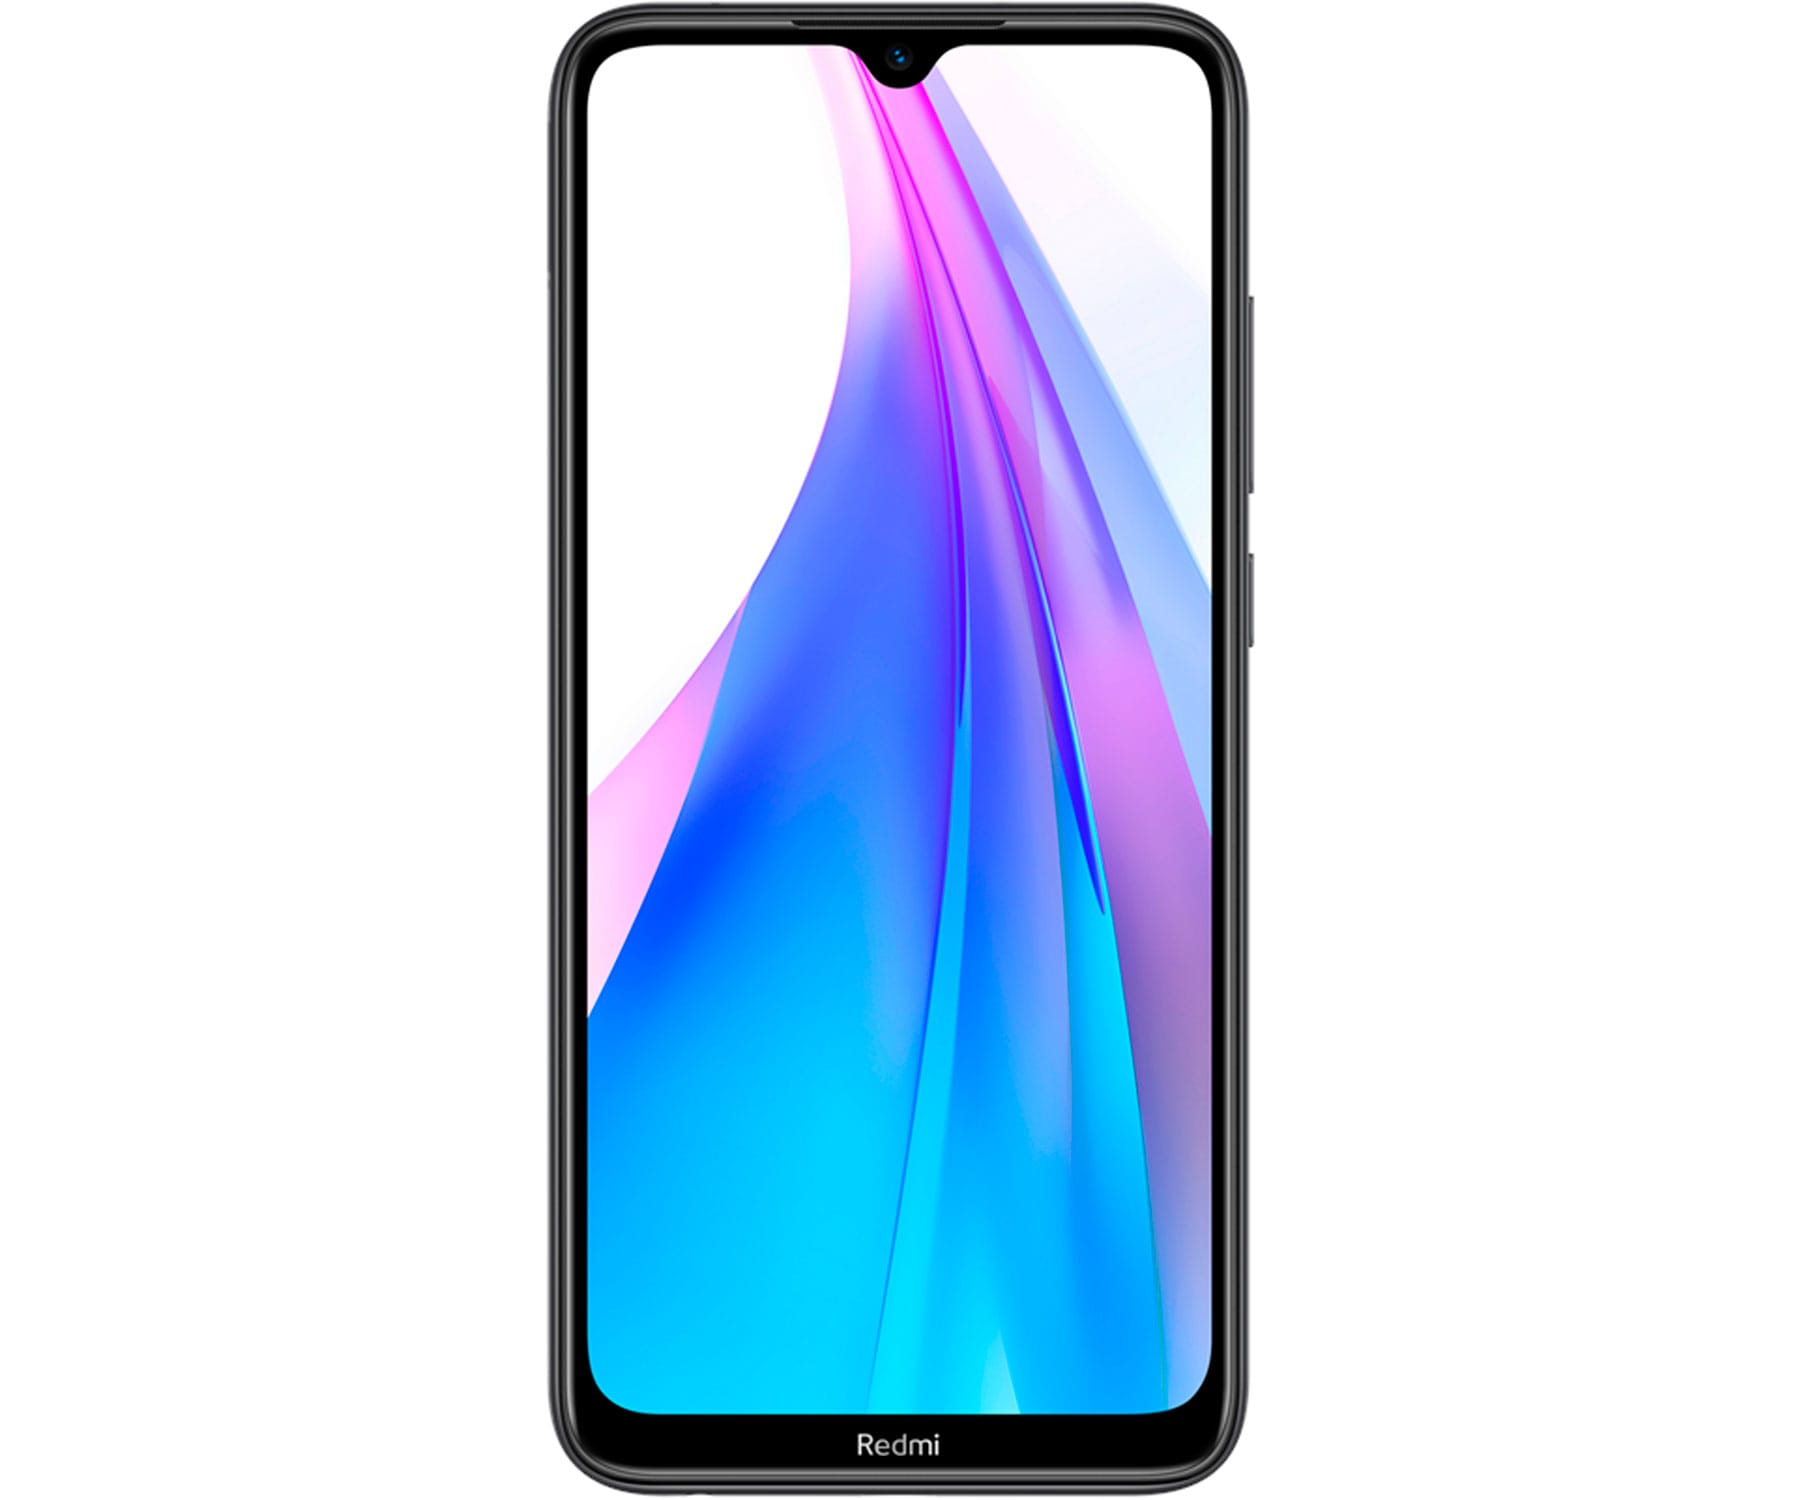 XIAOMI REDMI NOTE 8T GRIS MÓVIL 4G DUAL SIM 6.3'' FHD+ OCTACORE 128GB 4GB RAM QUADCAM 48MP SELFIES 13MP